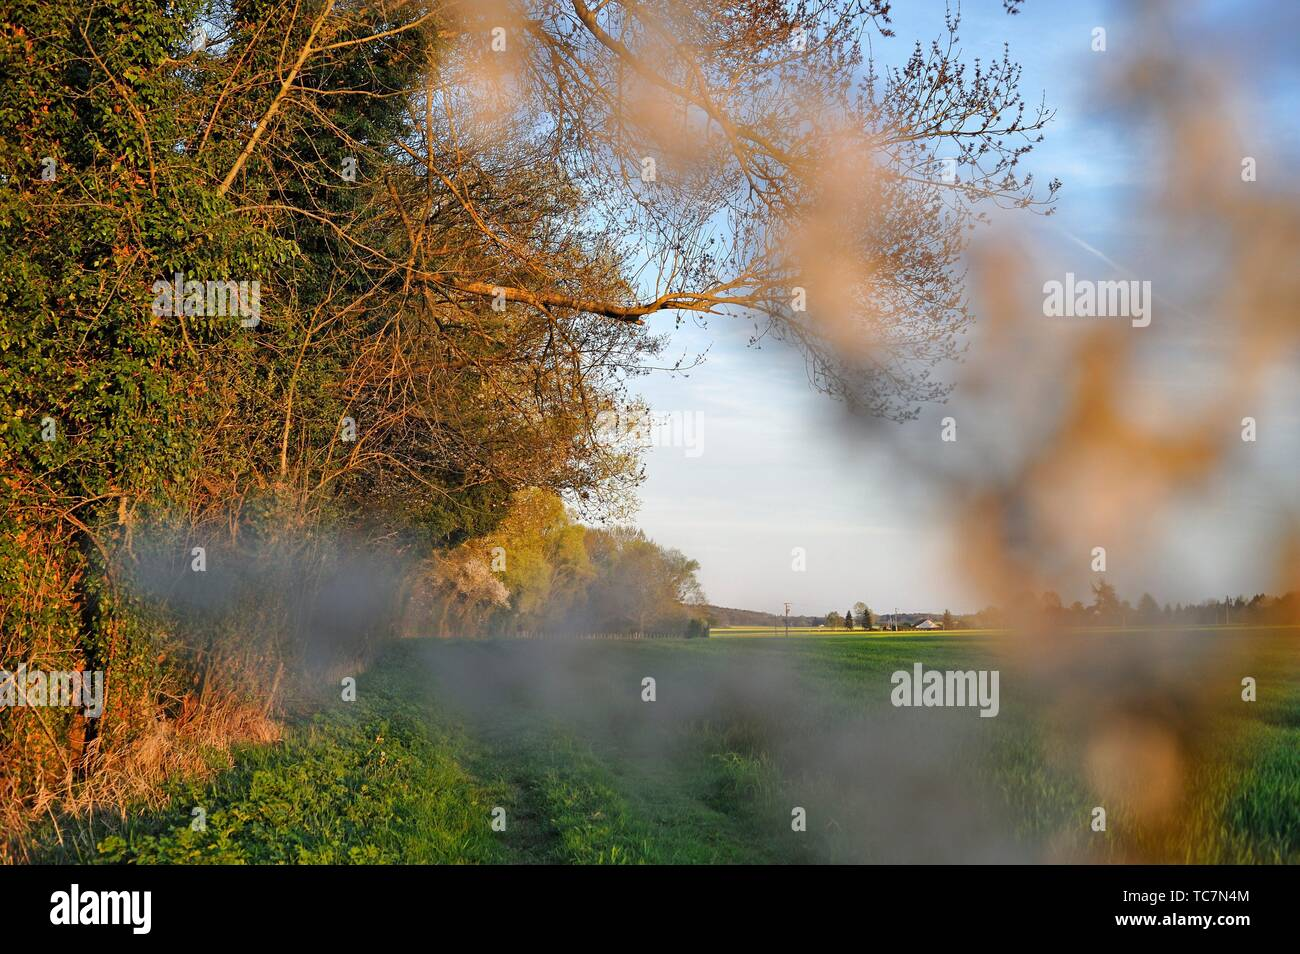 blackthorn branch (Prunus spinosa) in front of a rural path bordered by hedges, Eure-et-Loir department, Centre-Val de Loire region, France, Europe. - Stock Image